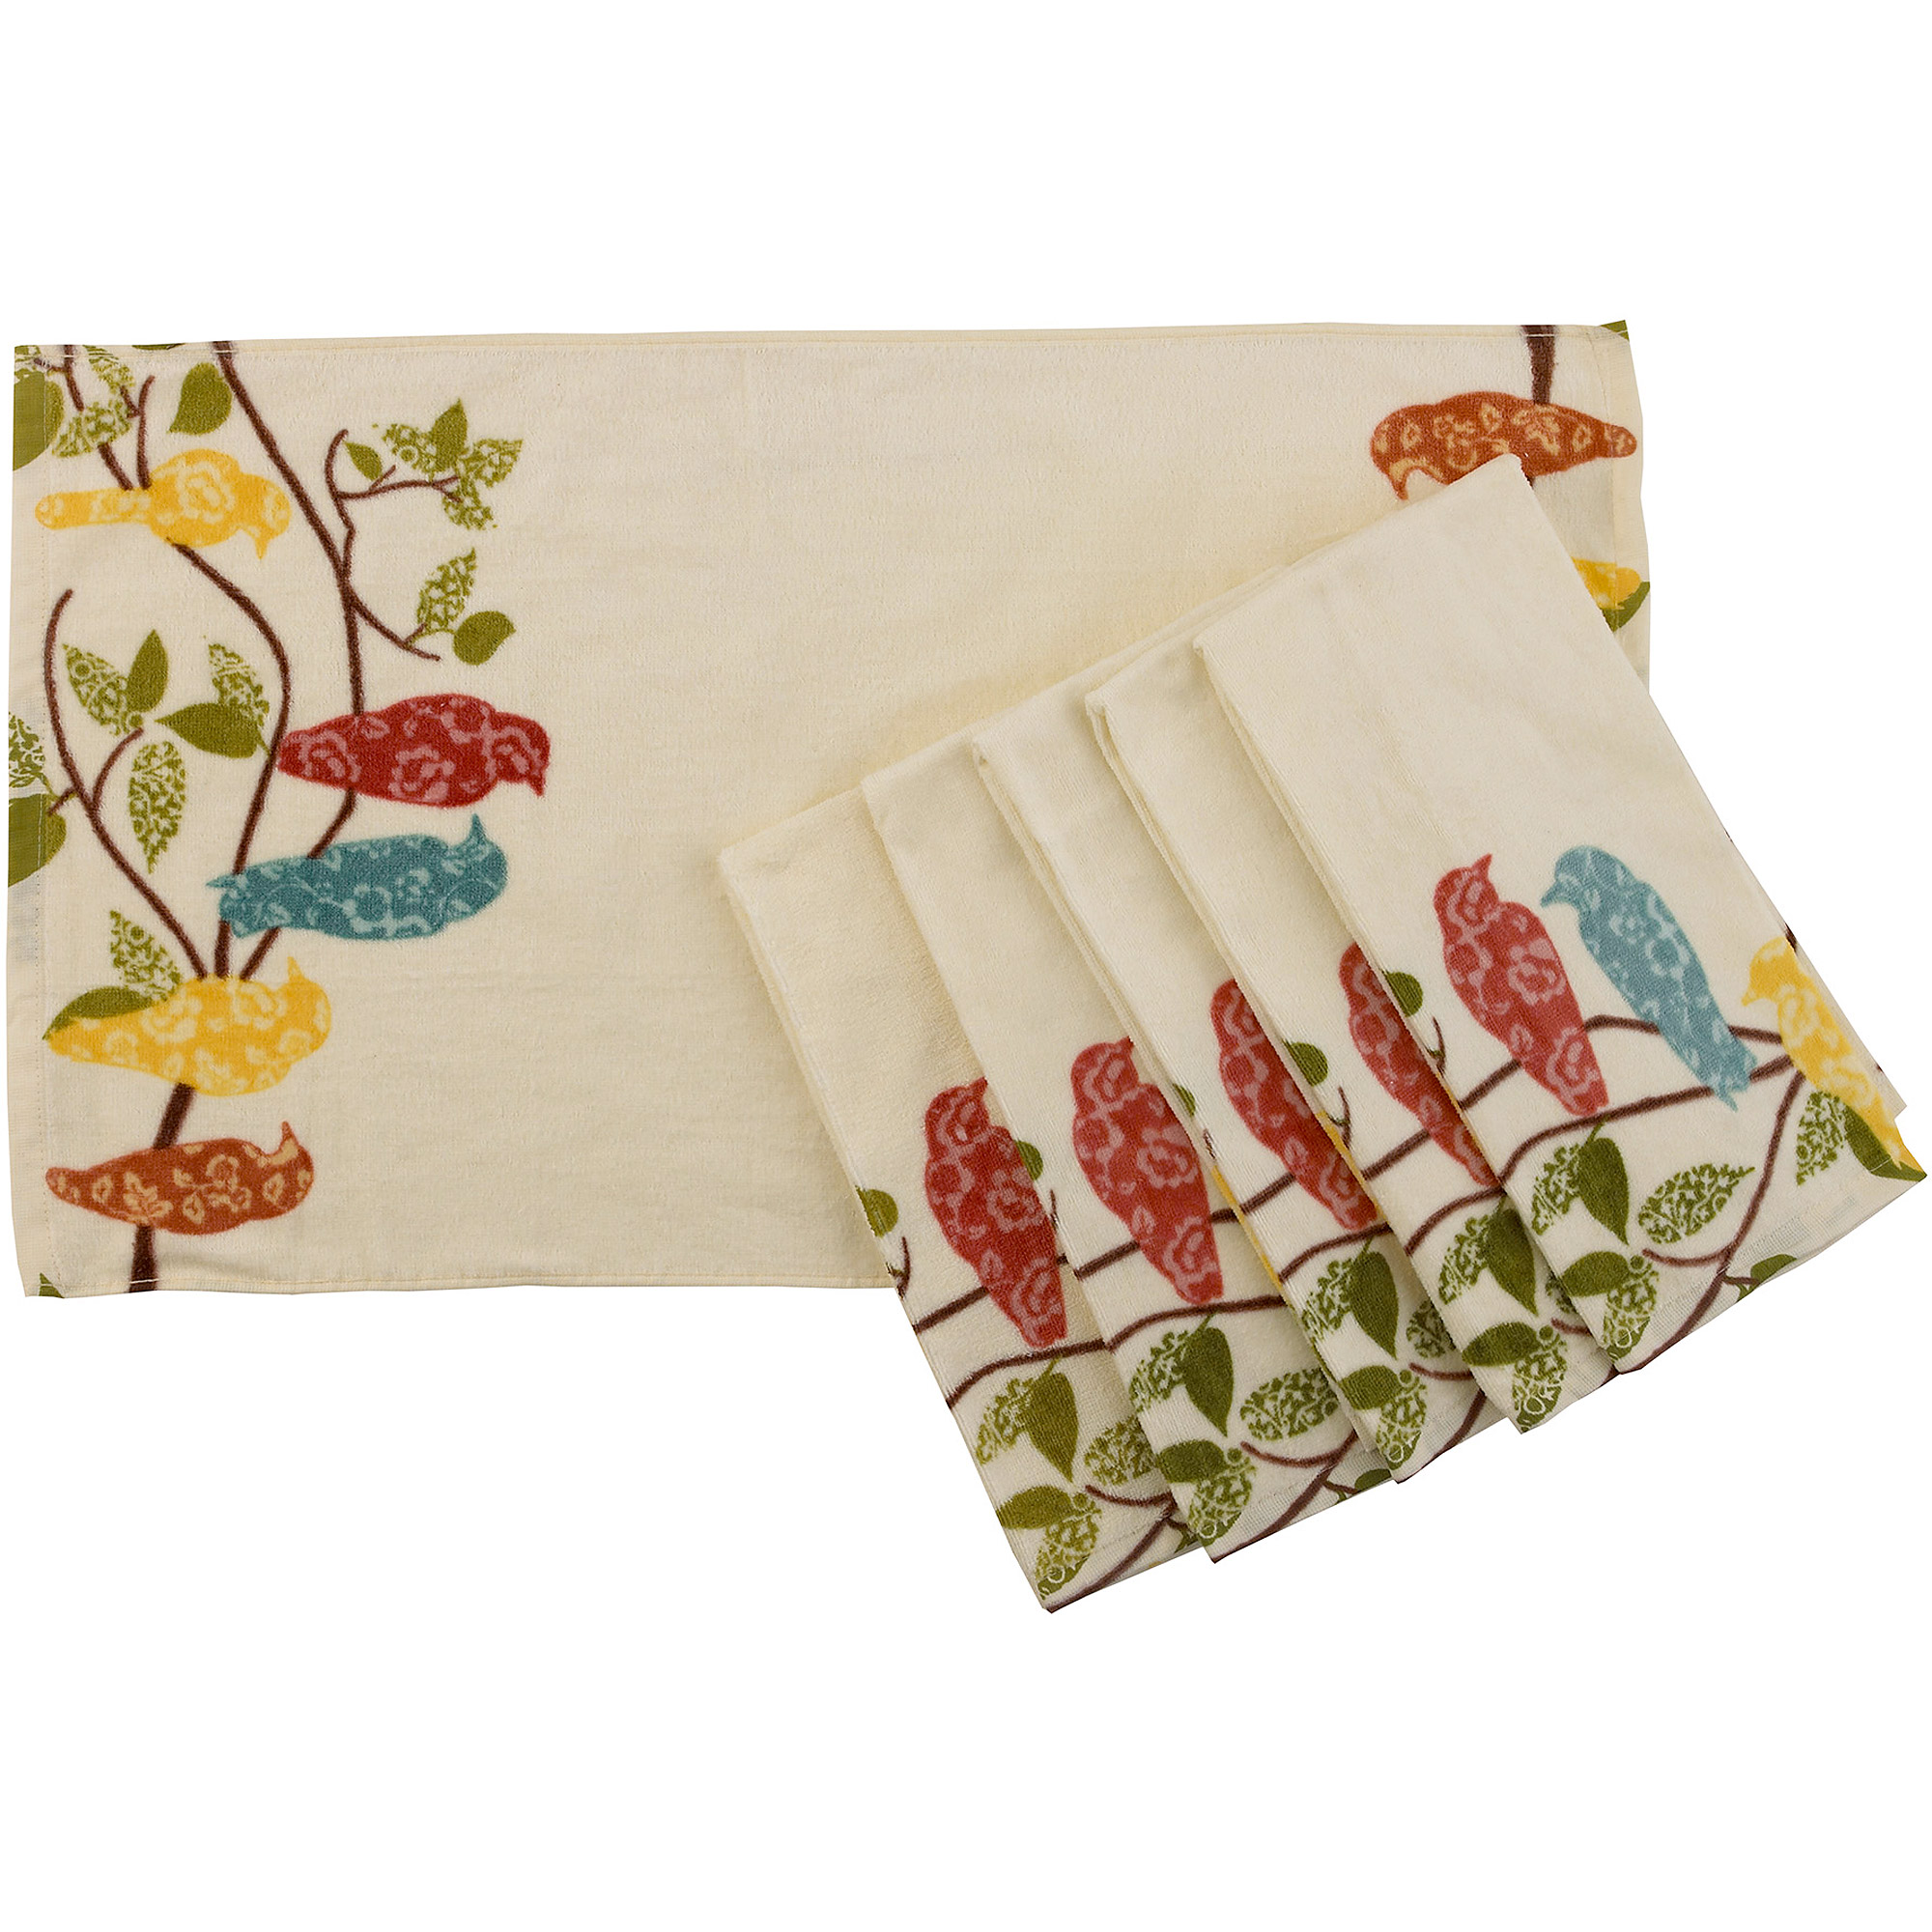 Better Homes and Gardens Songbirds Kitchen Towel, Set of 6